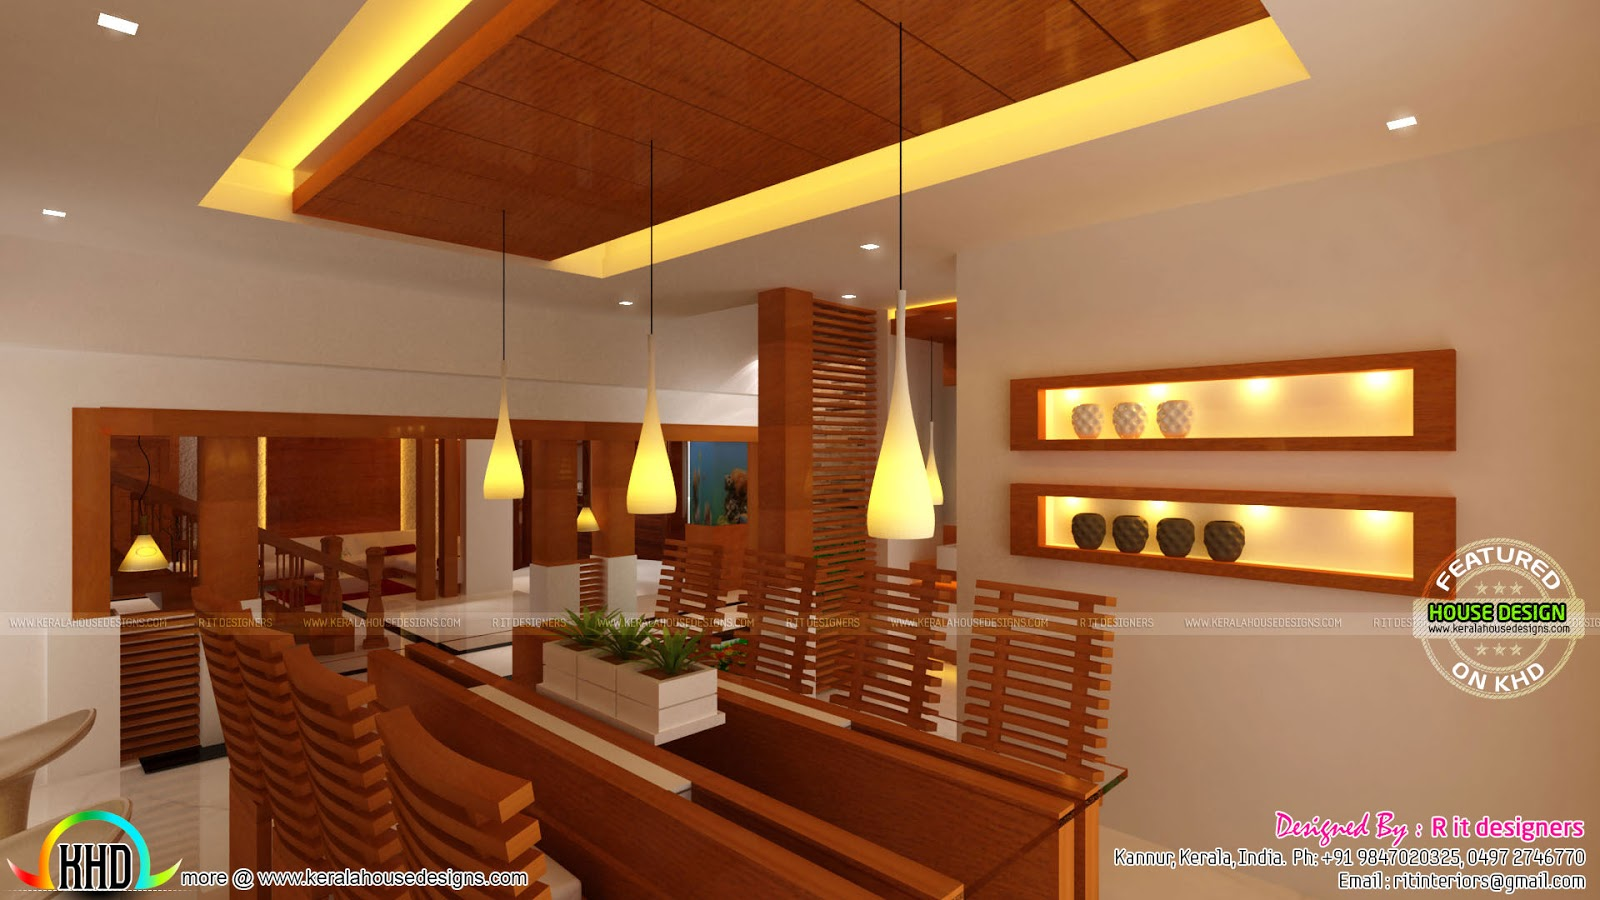 Wooden finish interior designs kerala home design and for Dining home design